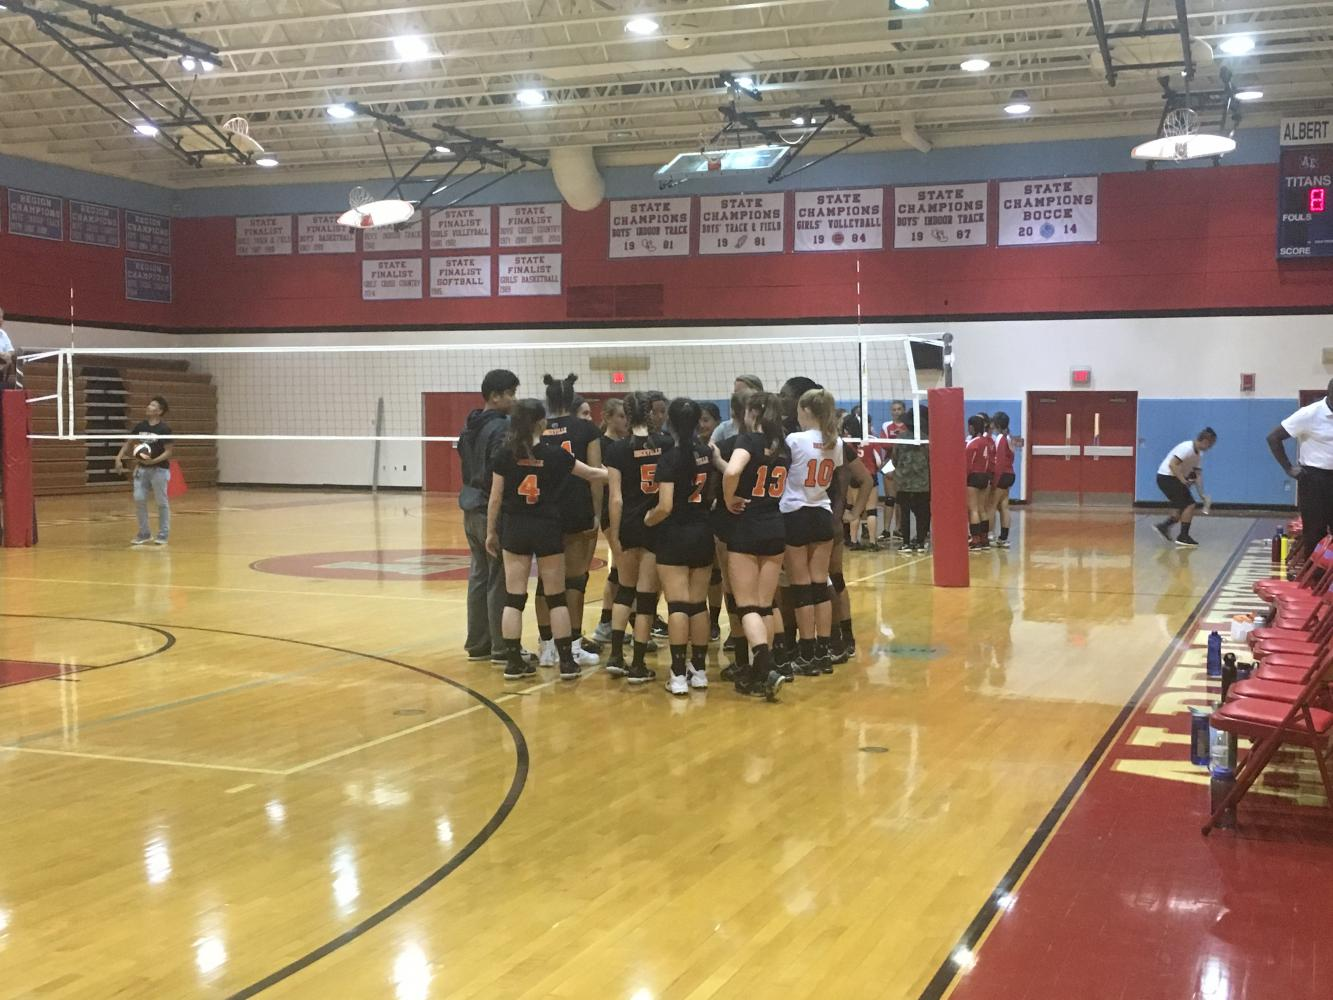 Rams huddle during a timeout against  the Albert Einstein Titans whom they beat in straight sets for their first win of the season.